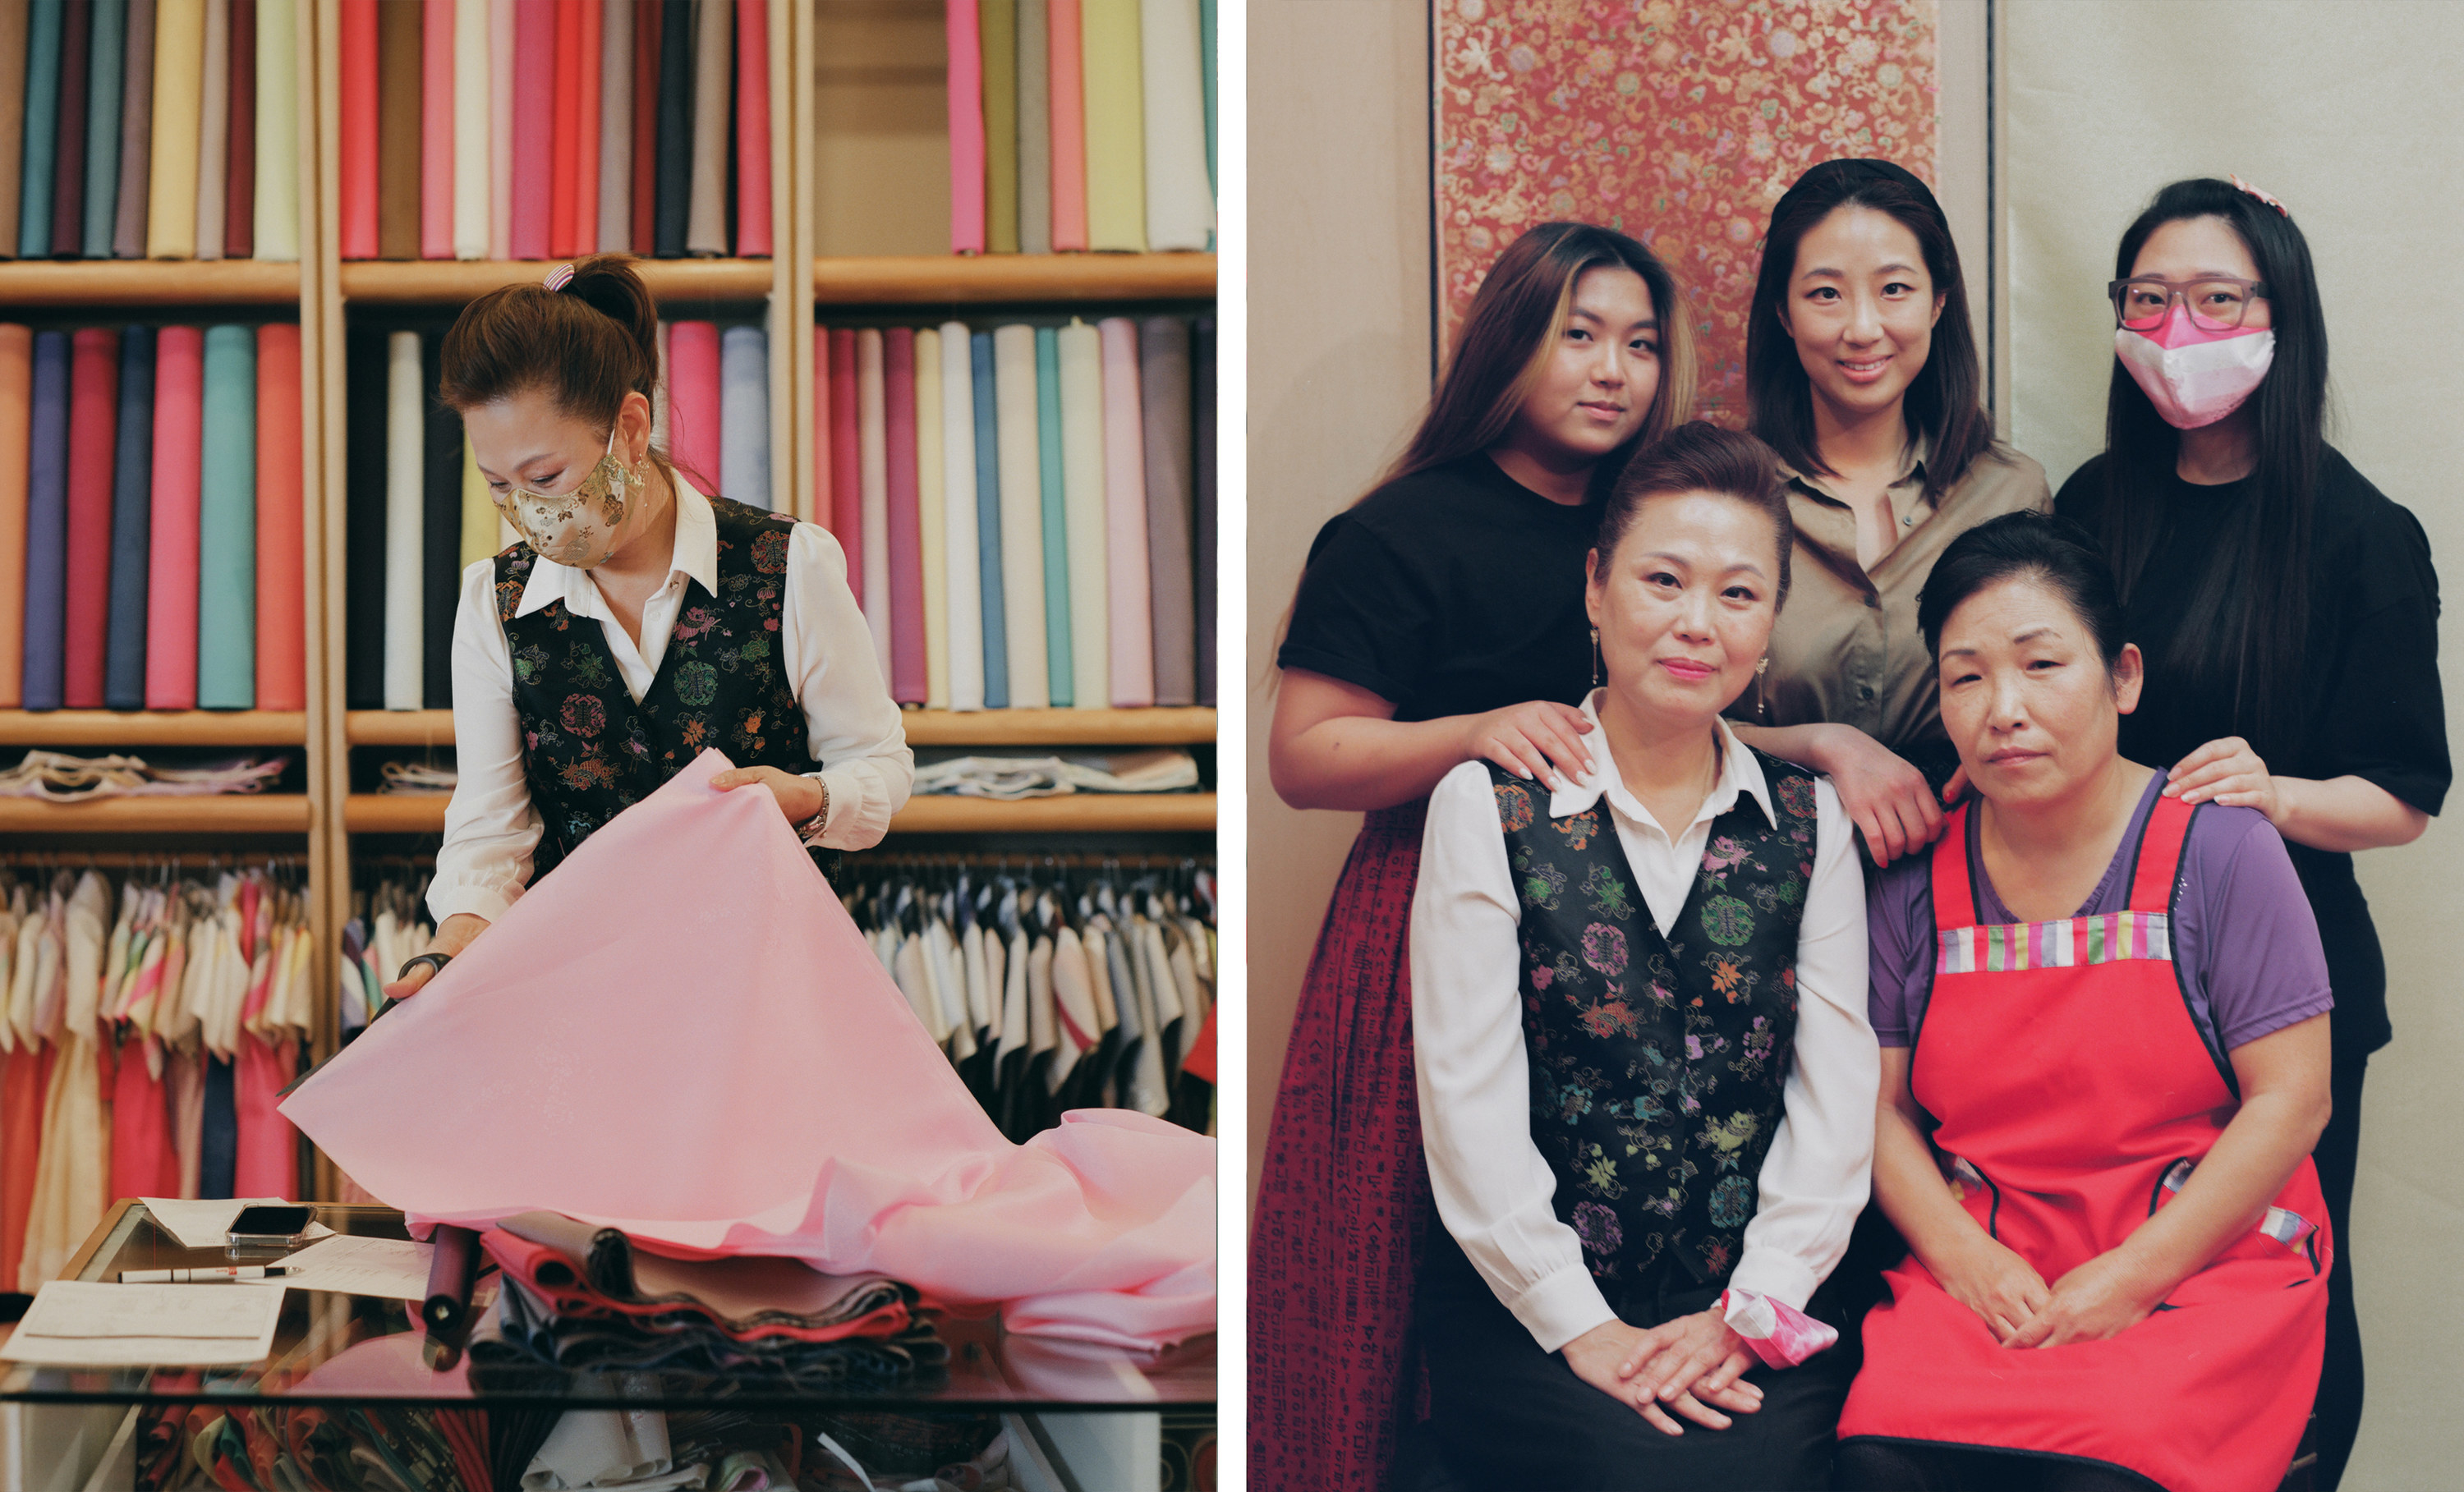 Left, a woman unfolding fabric in a dress shop, right, the same woman with four employees